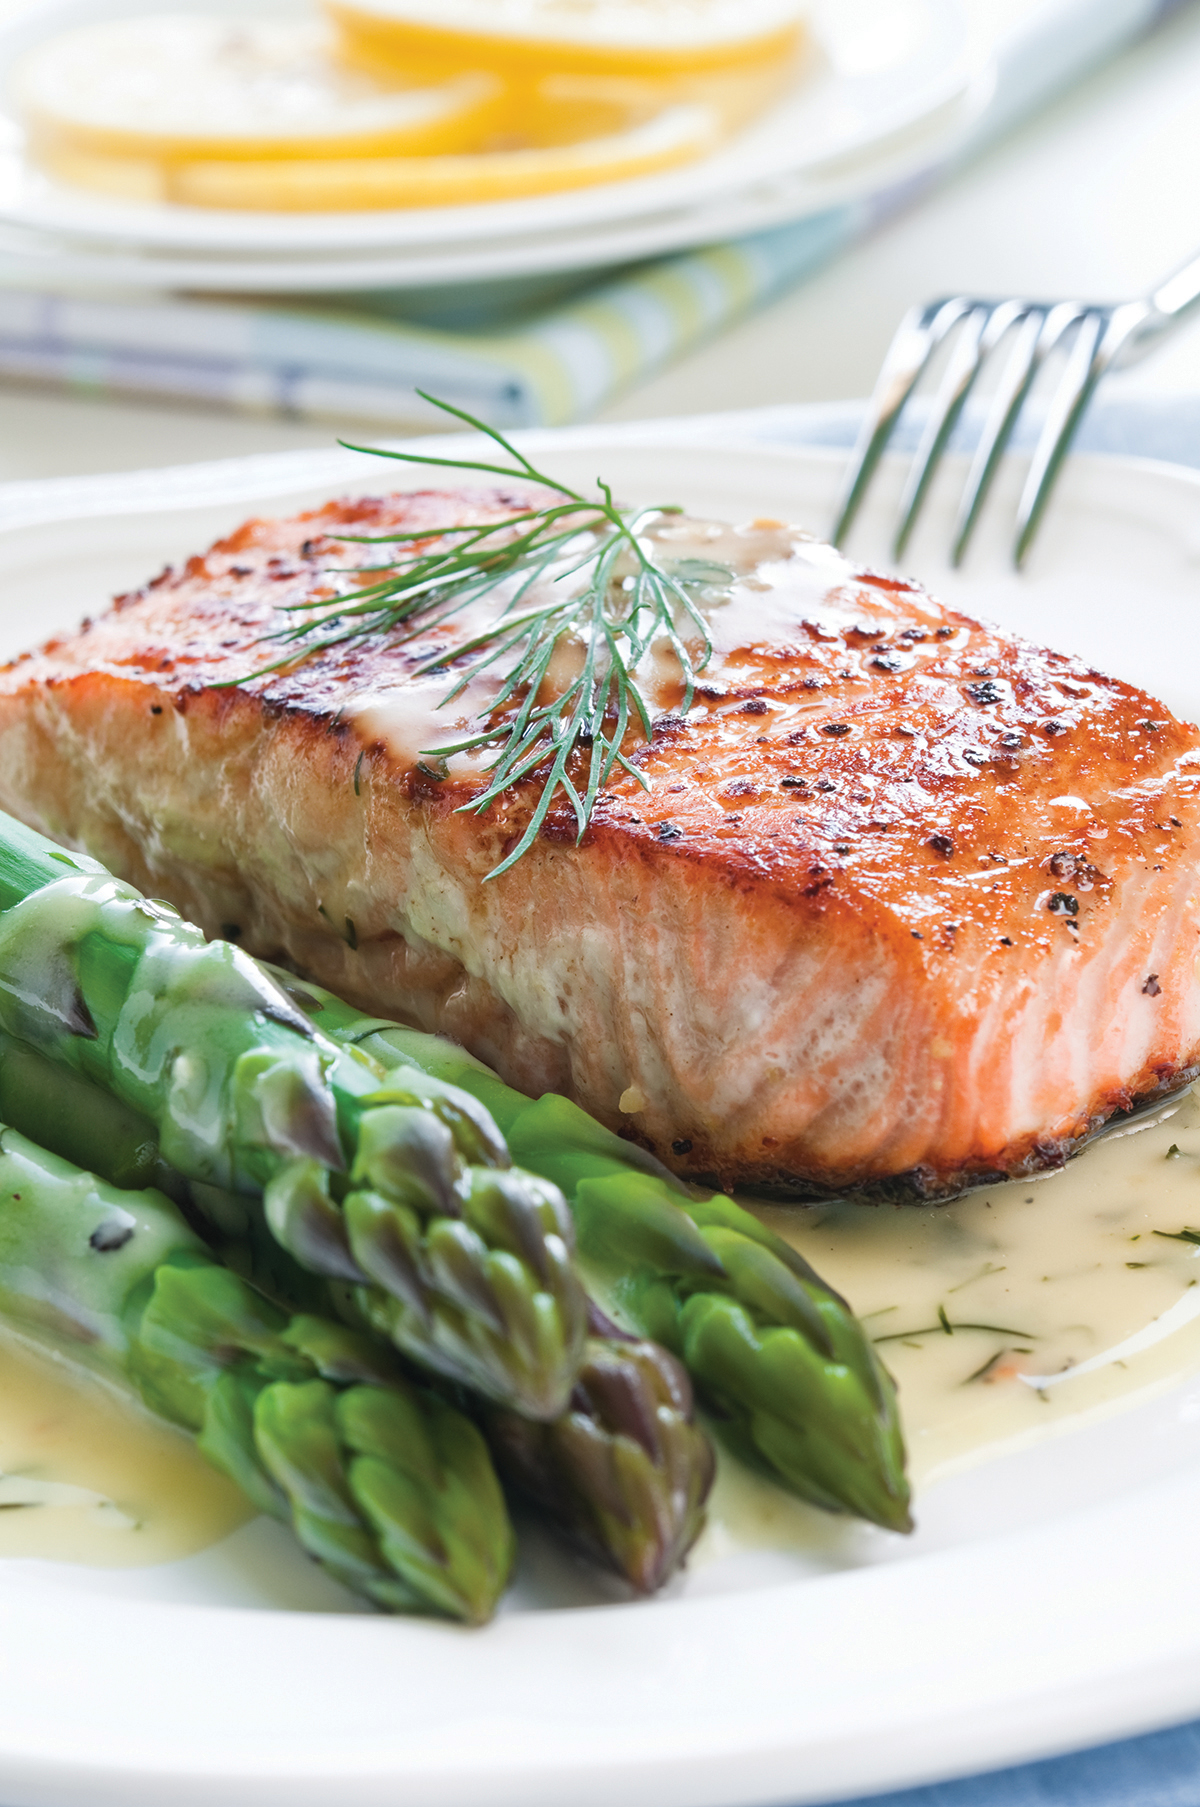 High protein low fat lose weight